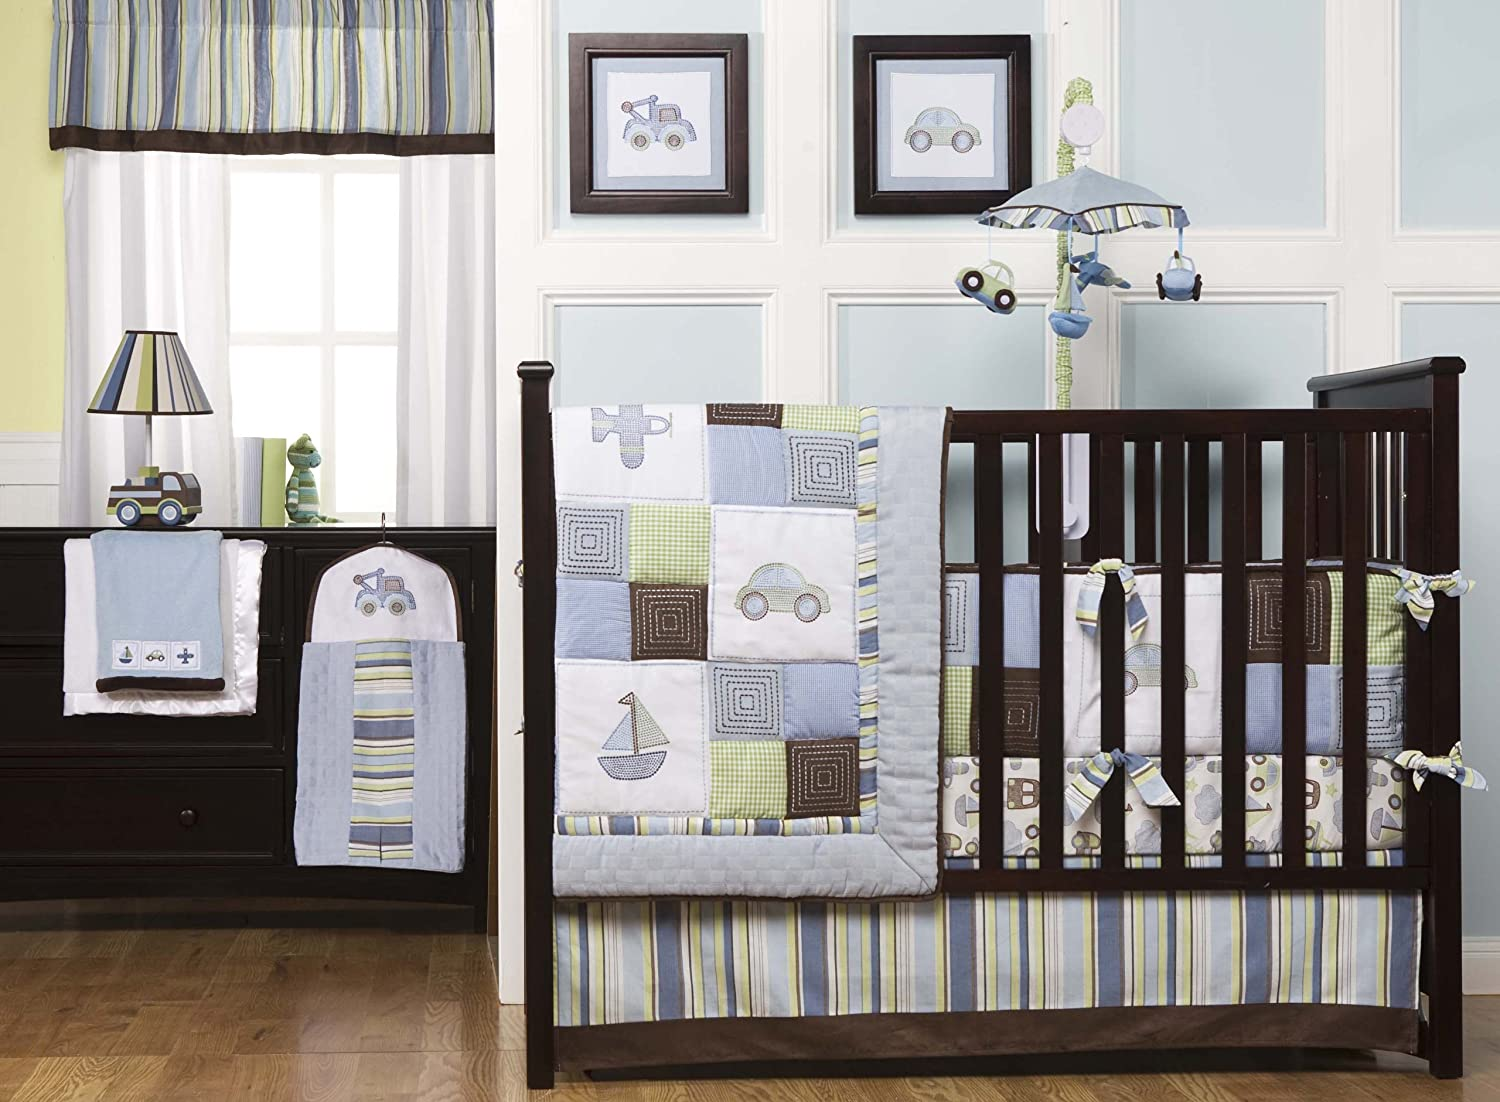 Letters crib bedding set 4 piece set contemporary baby bedding - Amazon Com Kids Line Mosaic Transport 8 Piece Crib Bedding Set Blue Brown Discontinued By Manufacturer